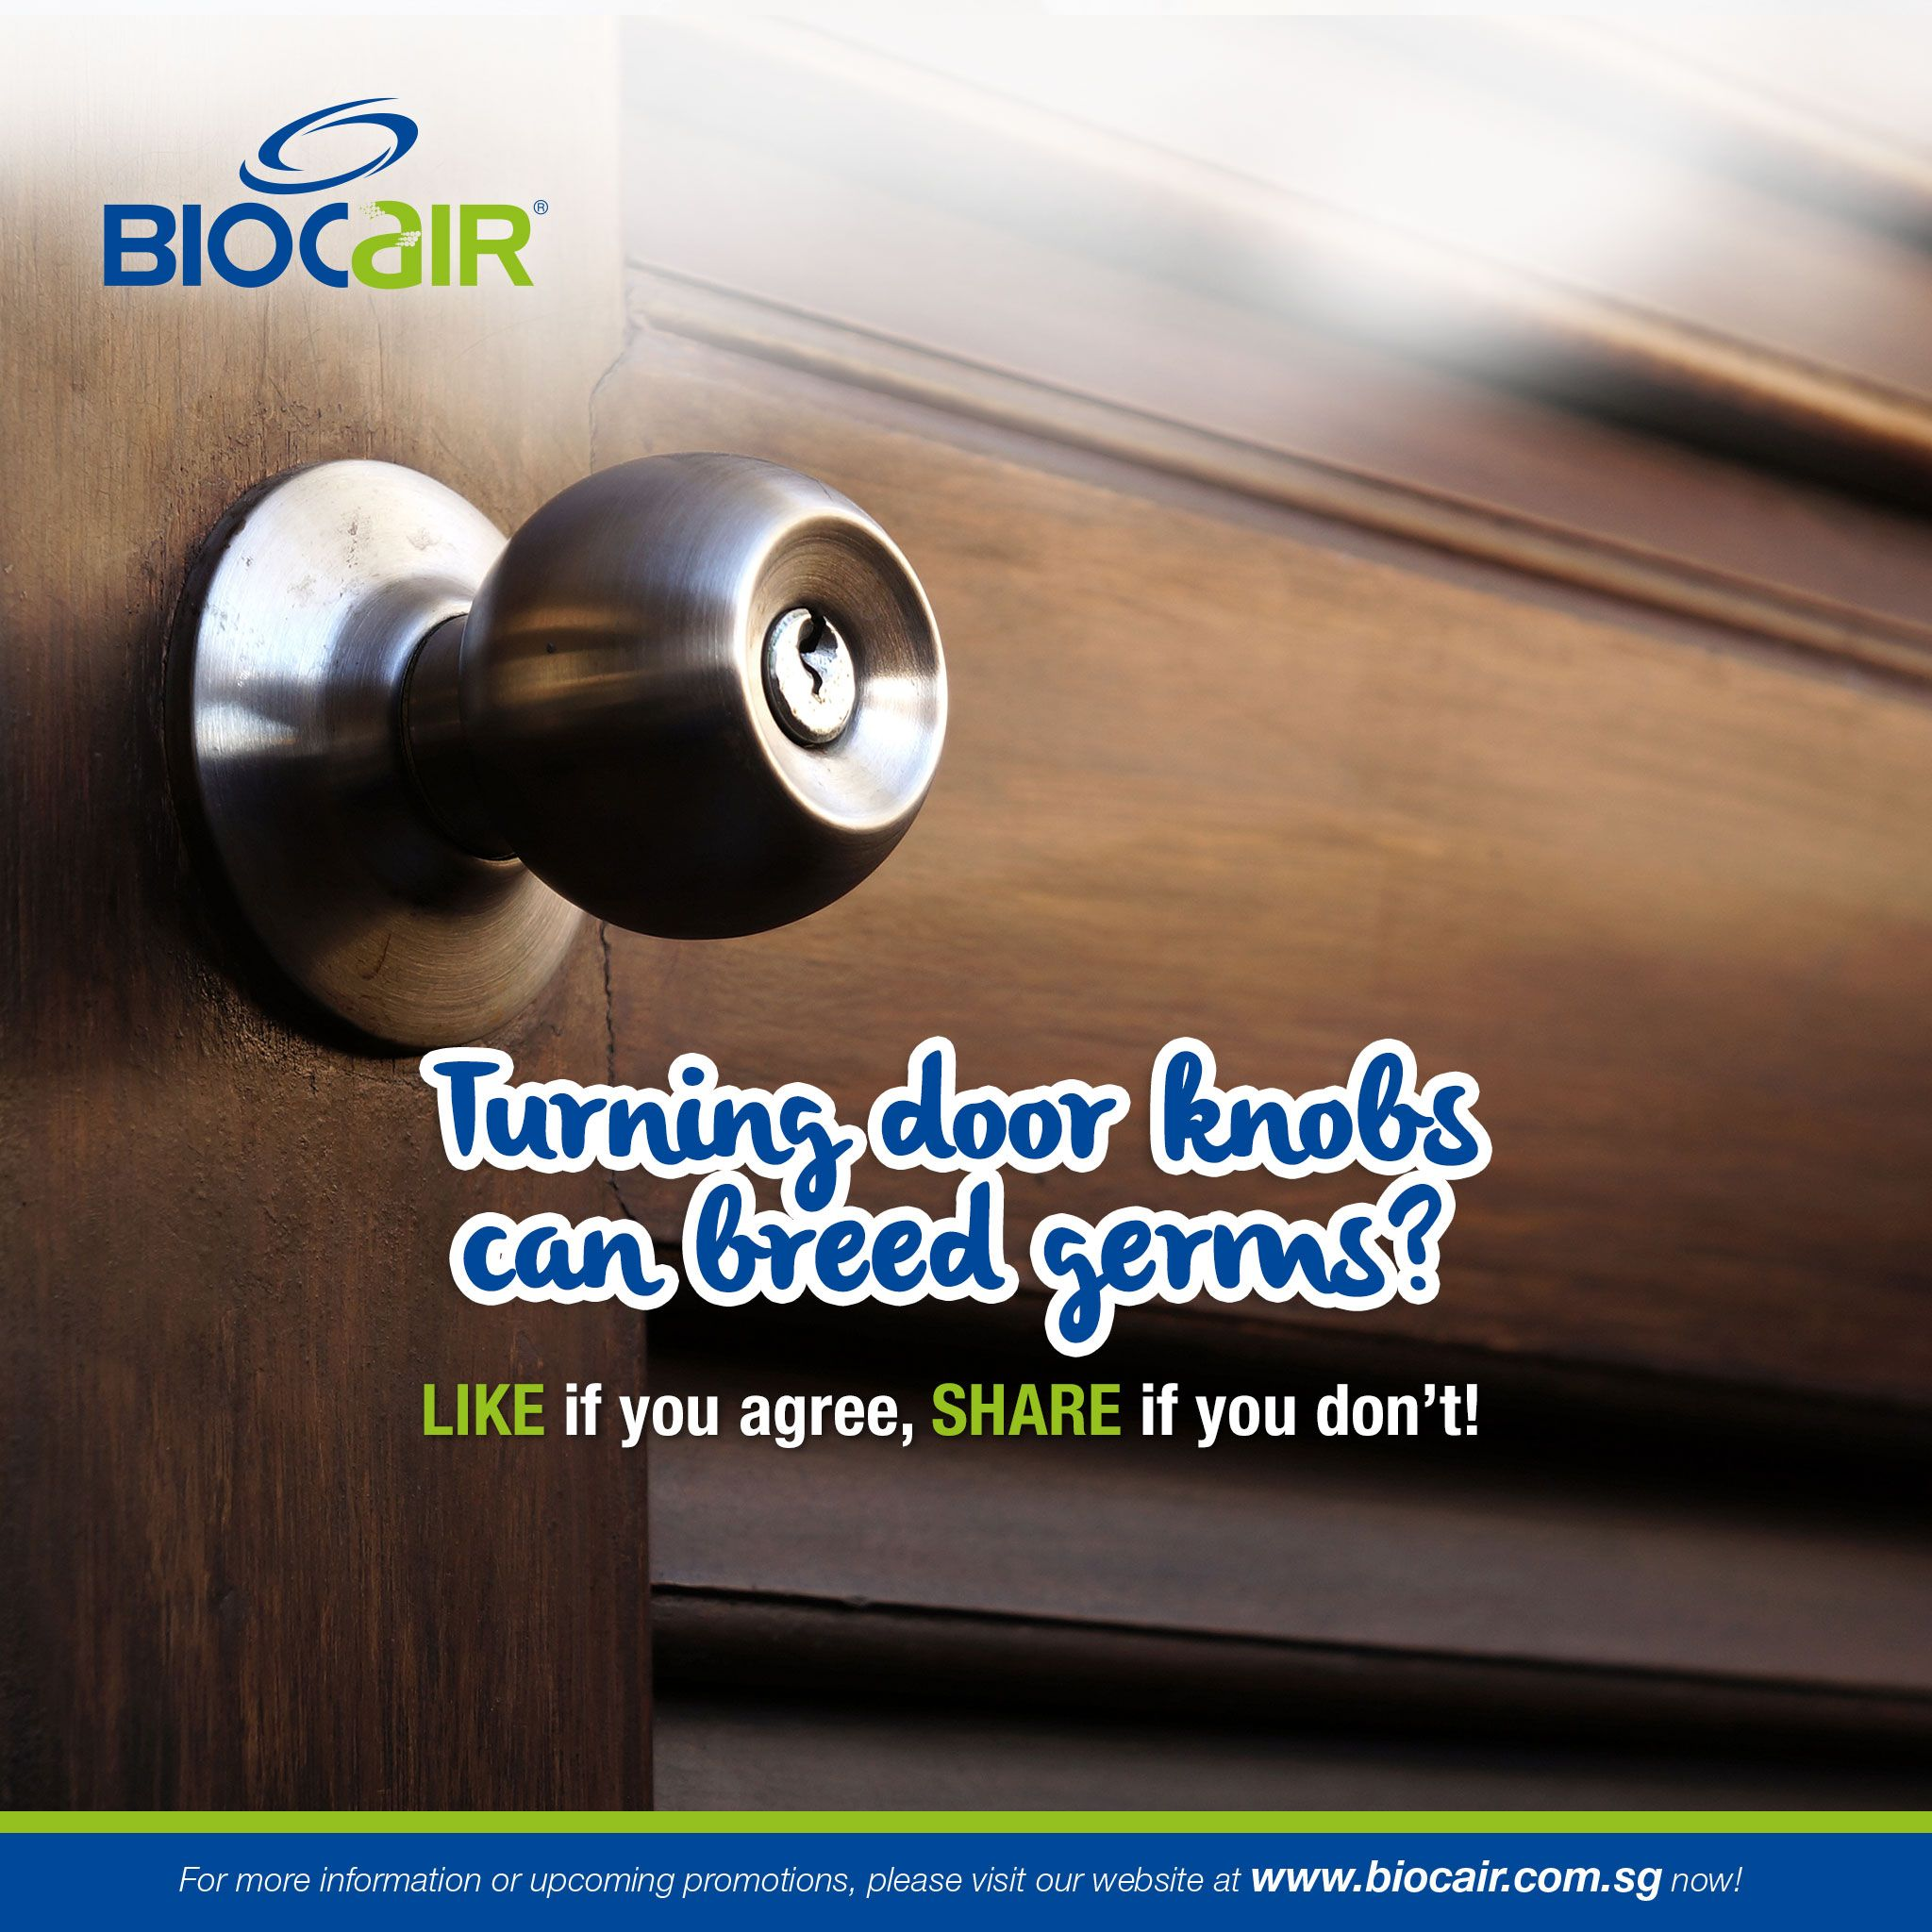 Turning door knobs can breed germs? | Other | Pinterest | Door knobs